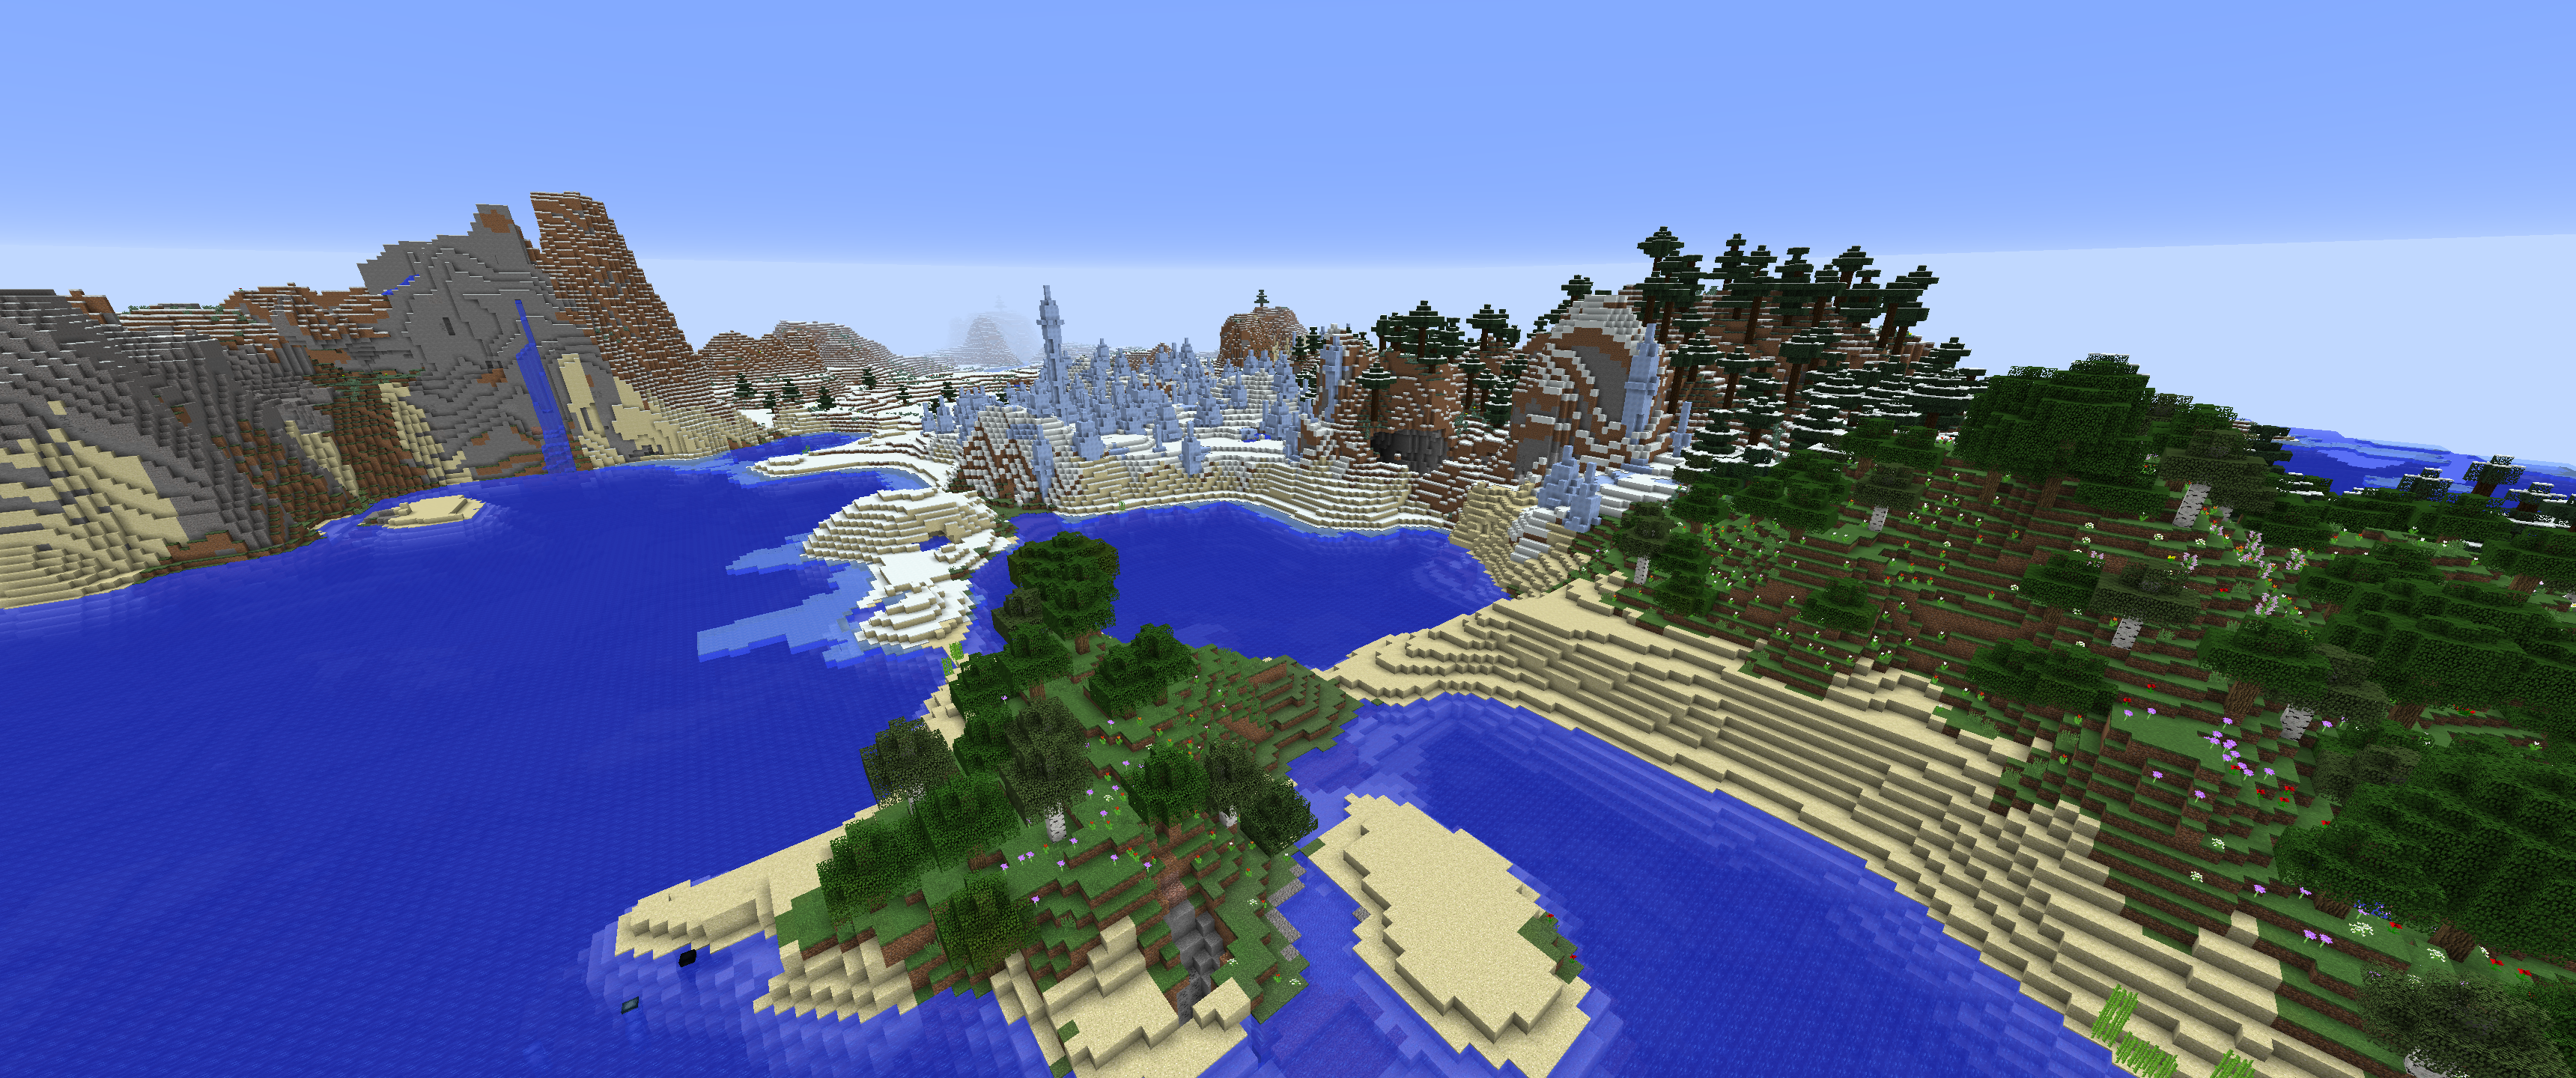 MC-125037] Biomes on land and landscape changed in new world